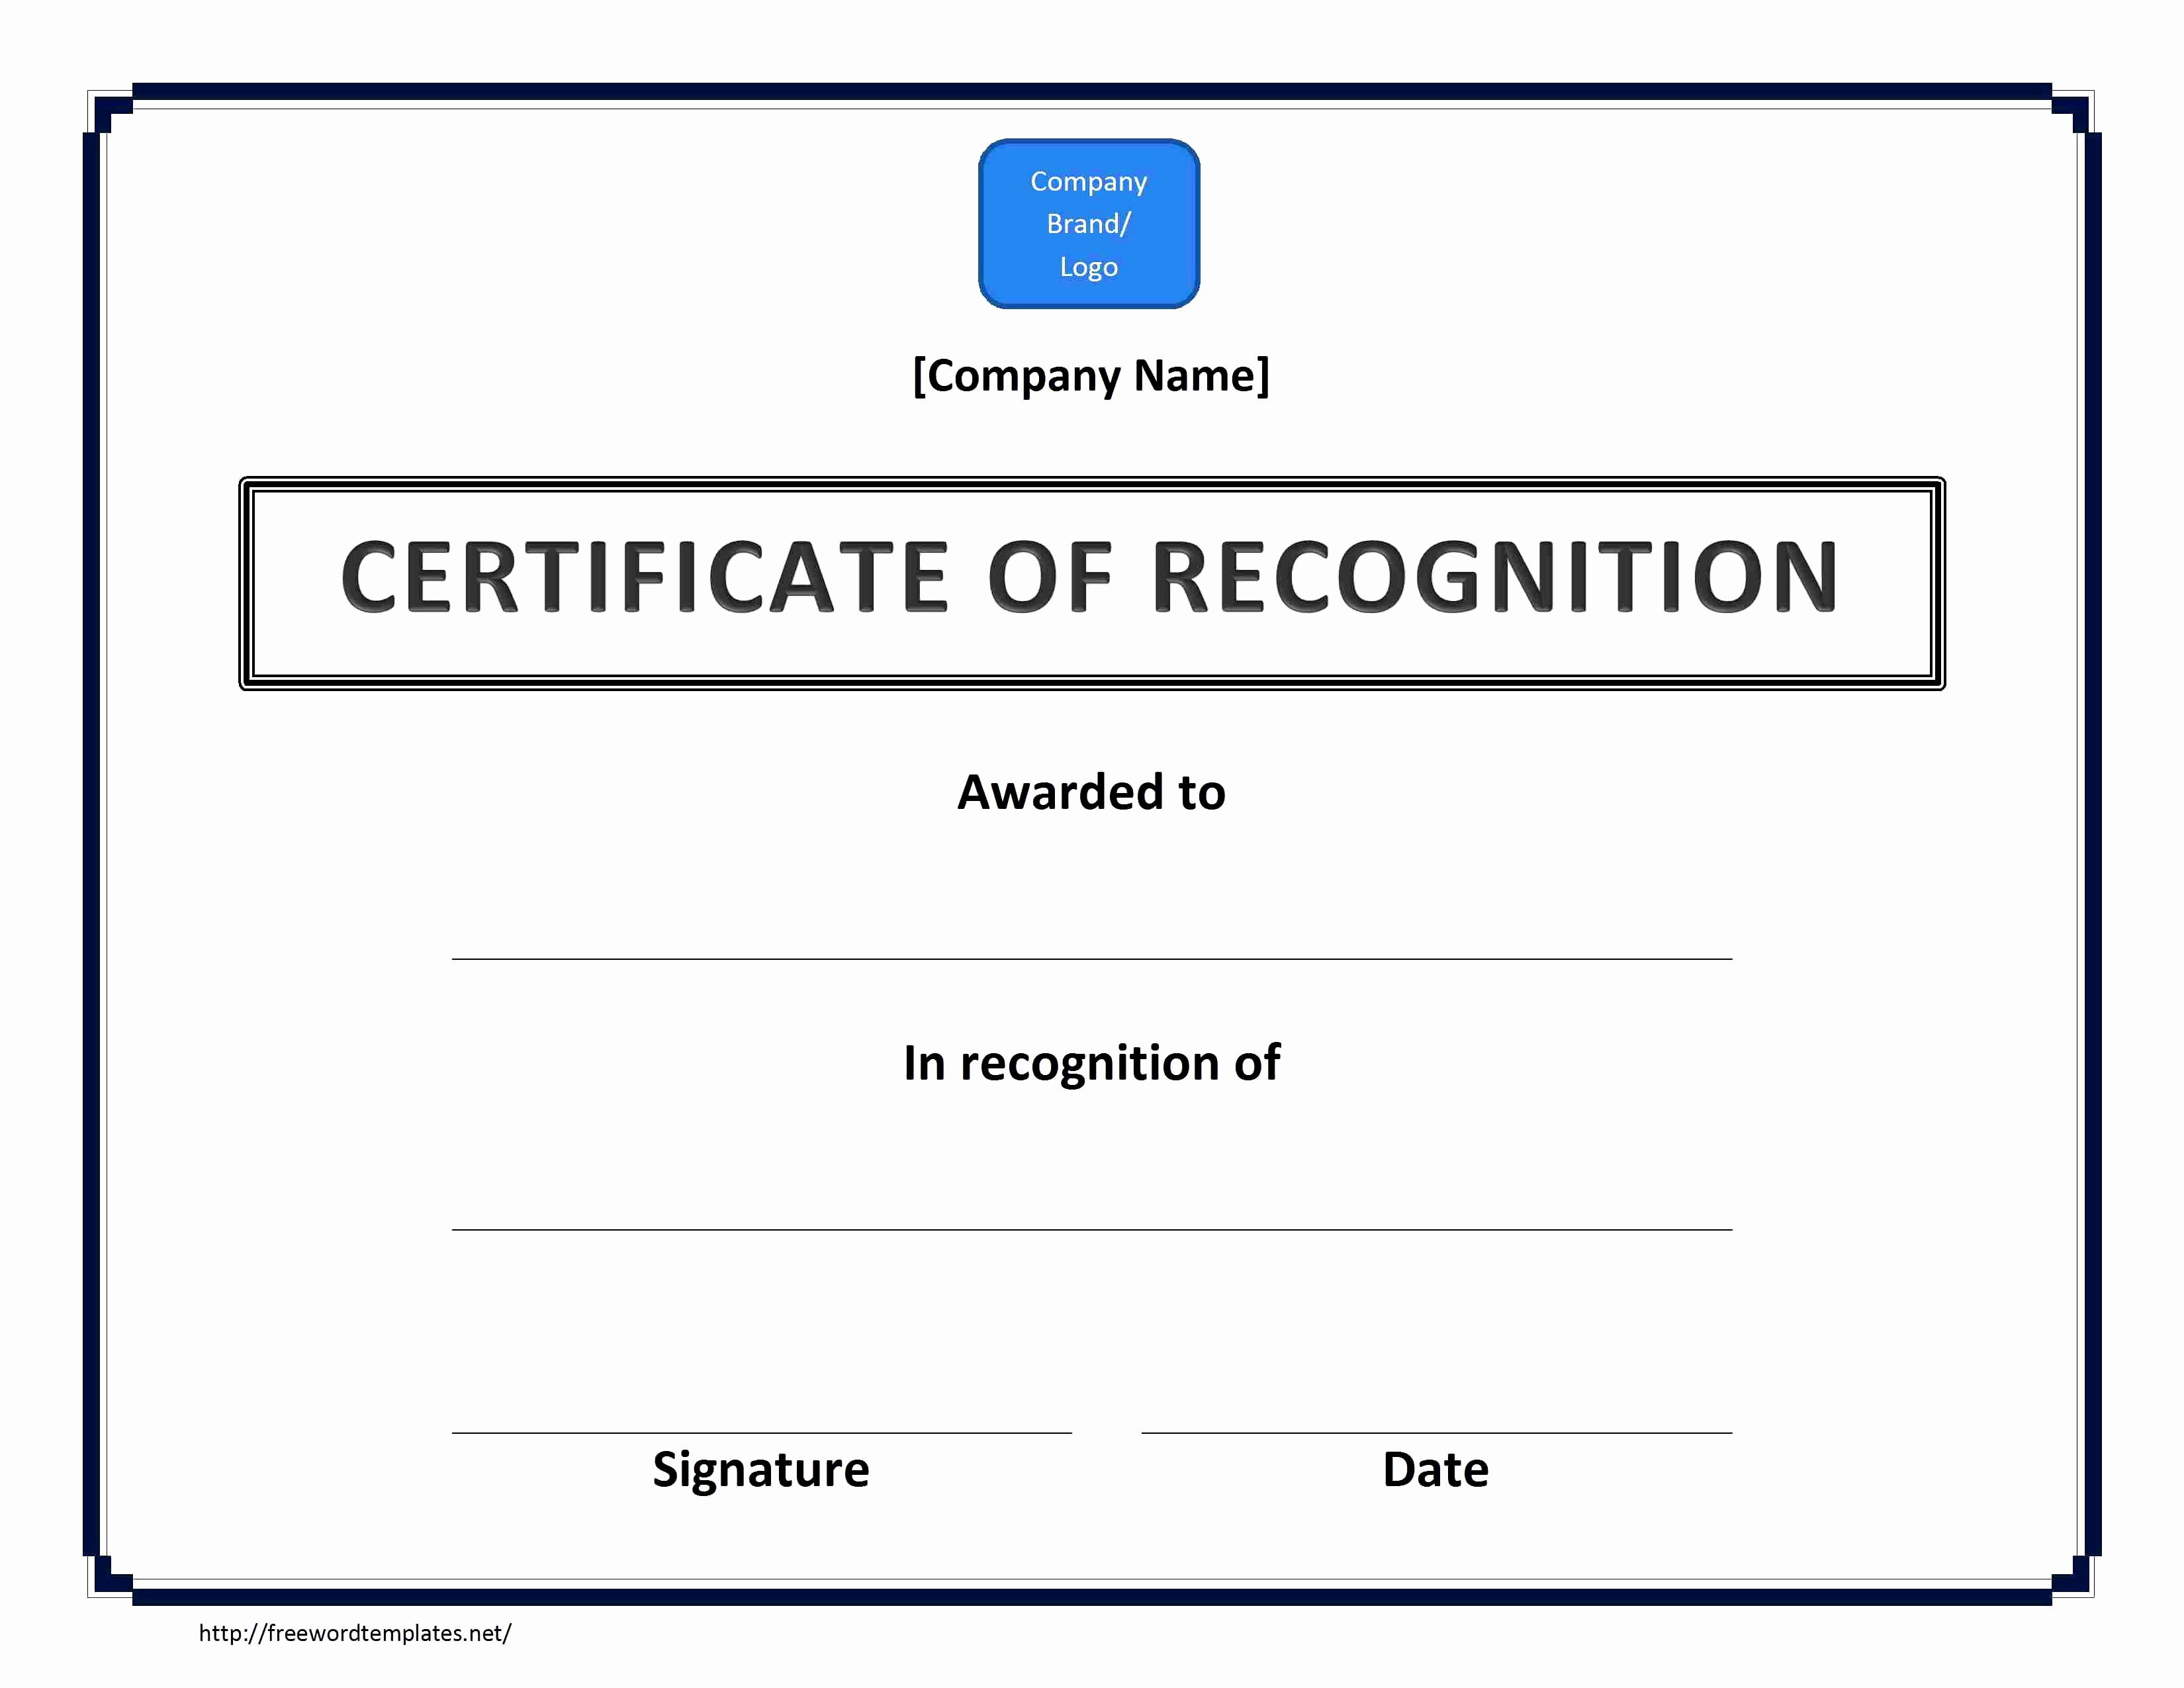 Certificate Of Recognition Template Word Inspirational Army Certificate Achievement Template Example Mughals